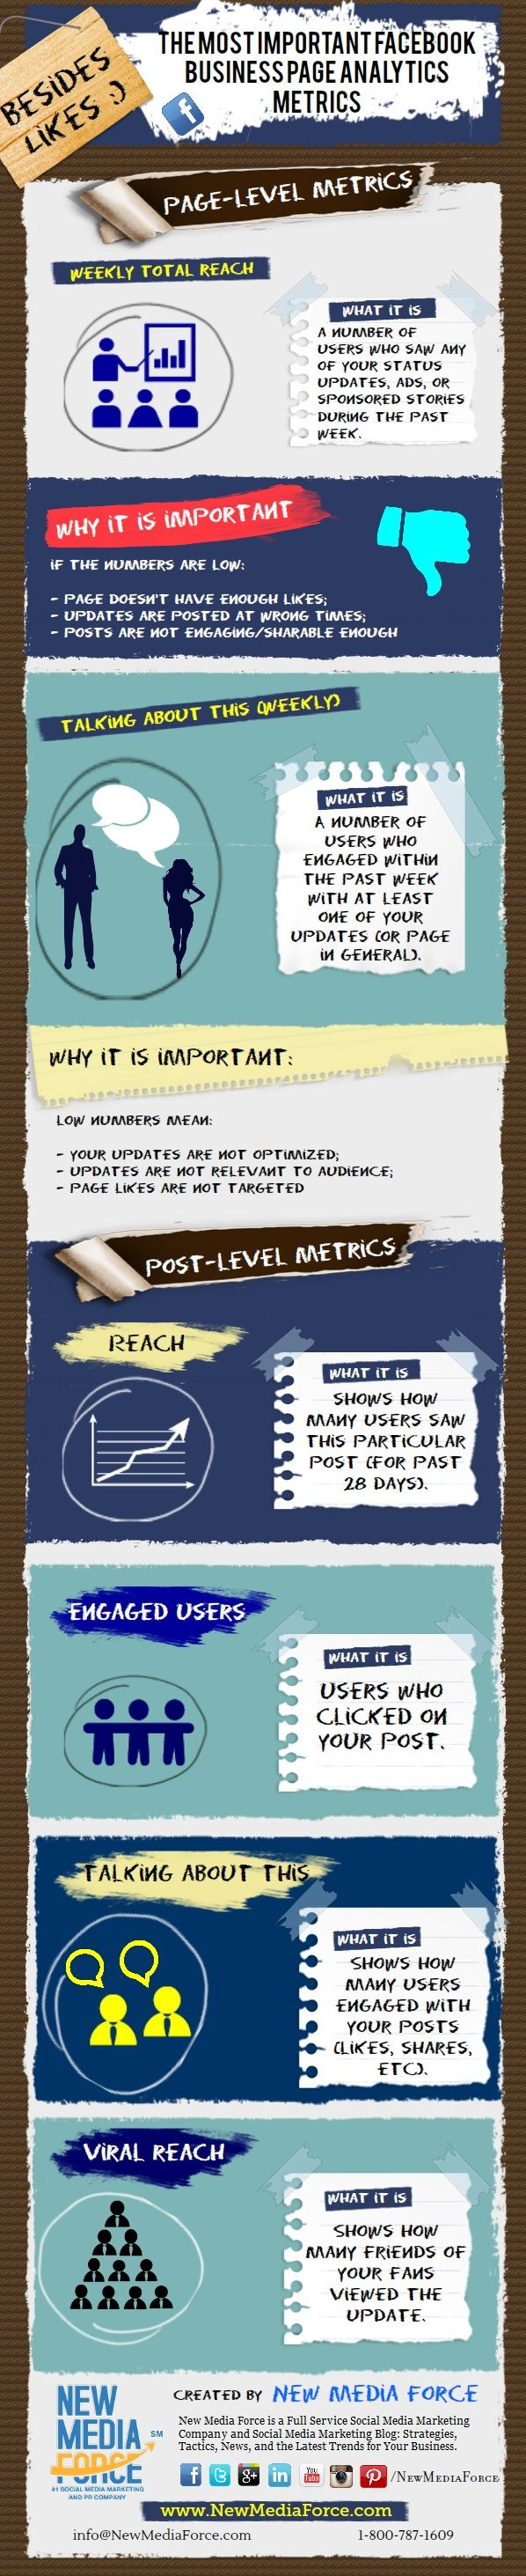 The most important Facebook business pages metrics besides likes